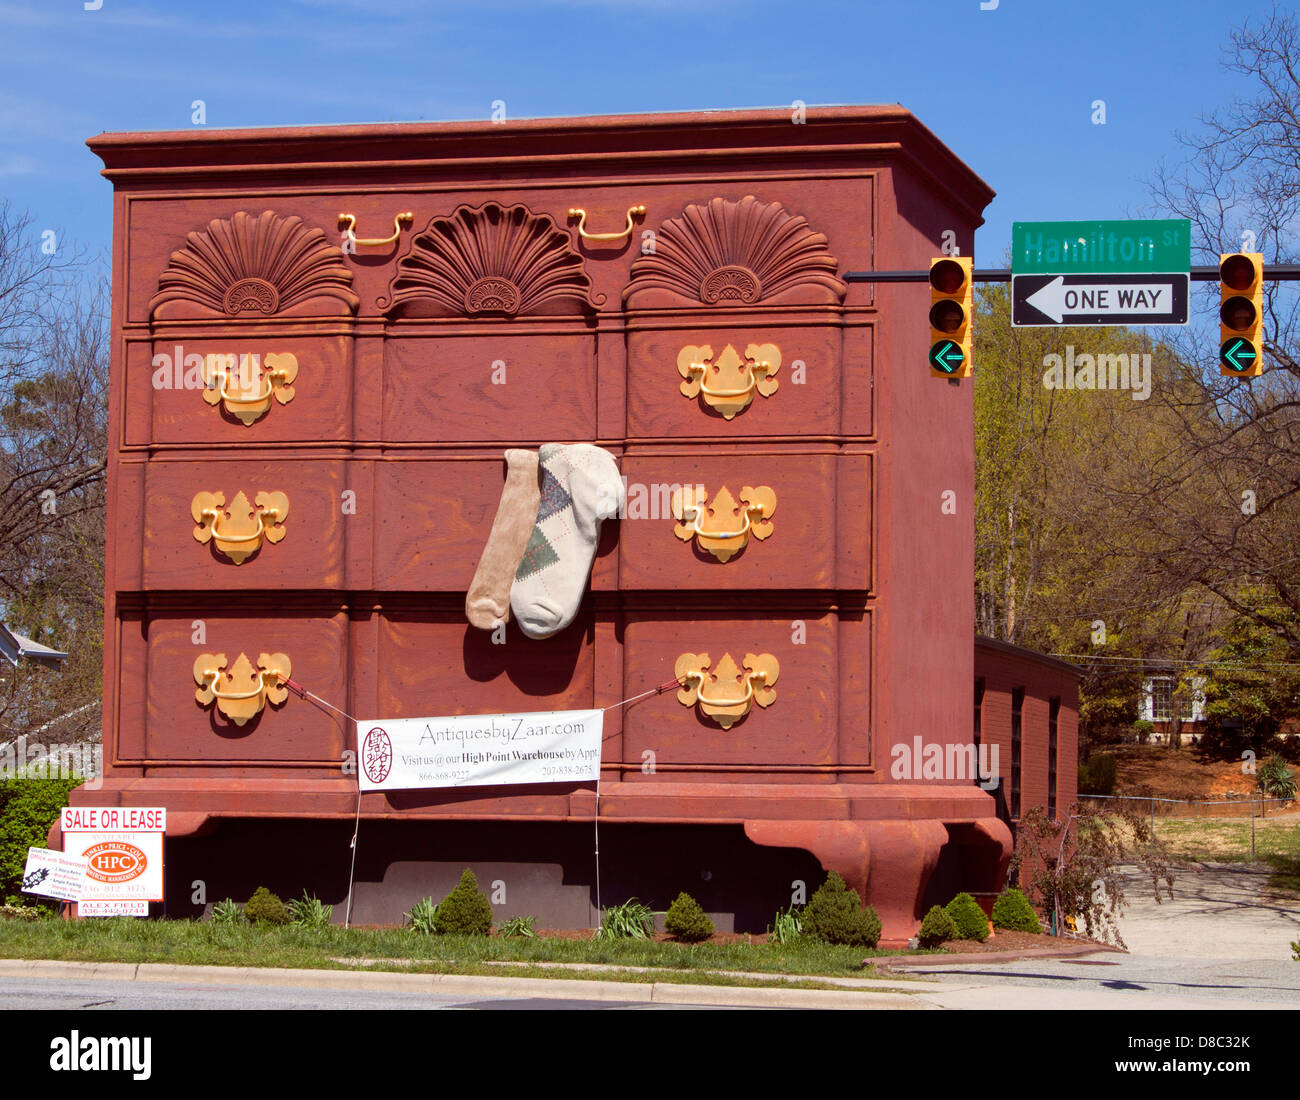 Giant Bureau in downtown High Point North Carolina - Stock Image